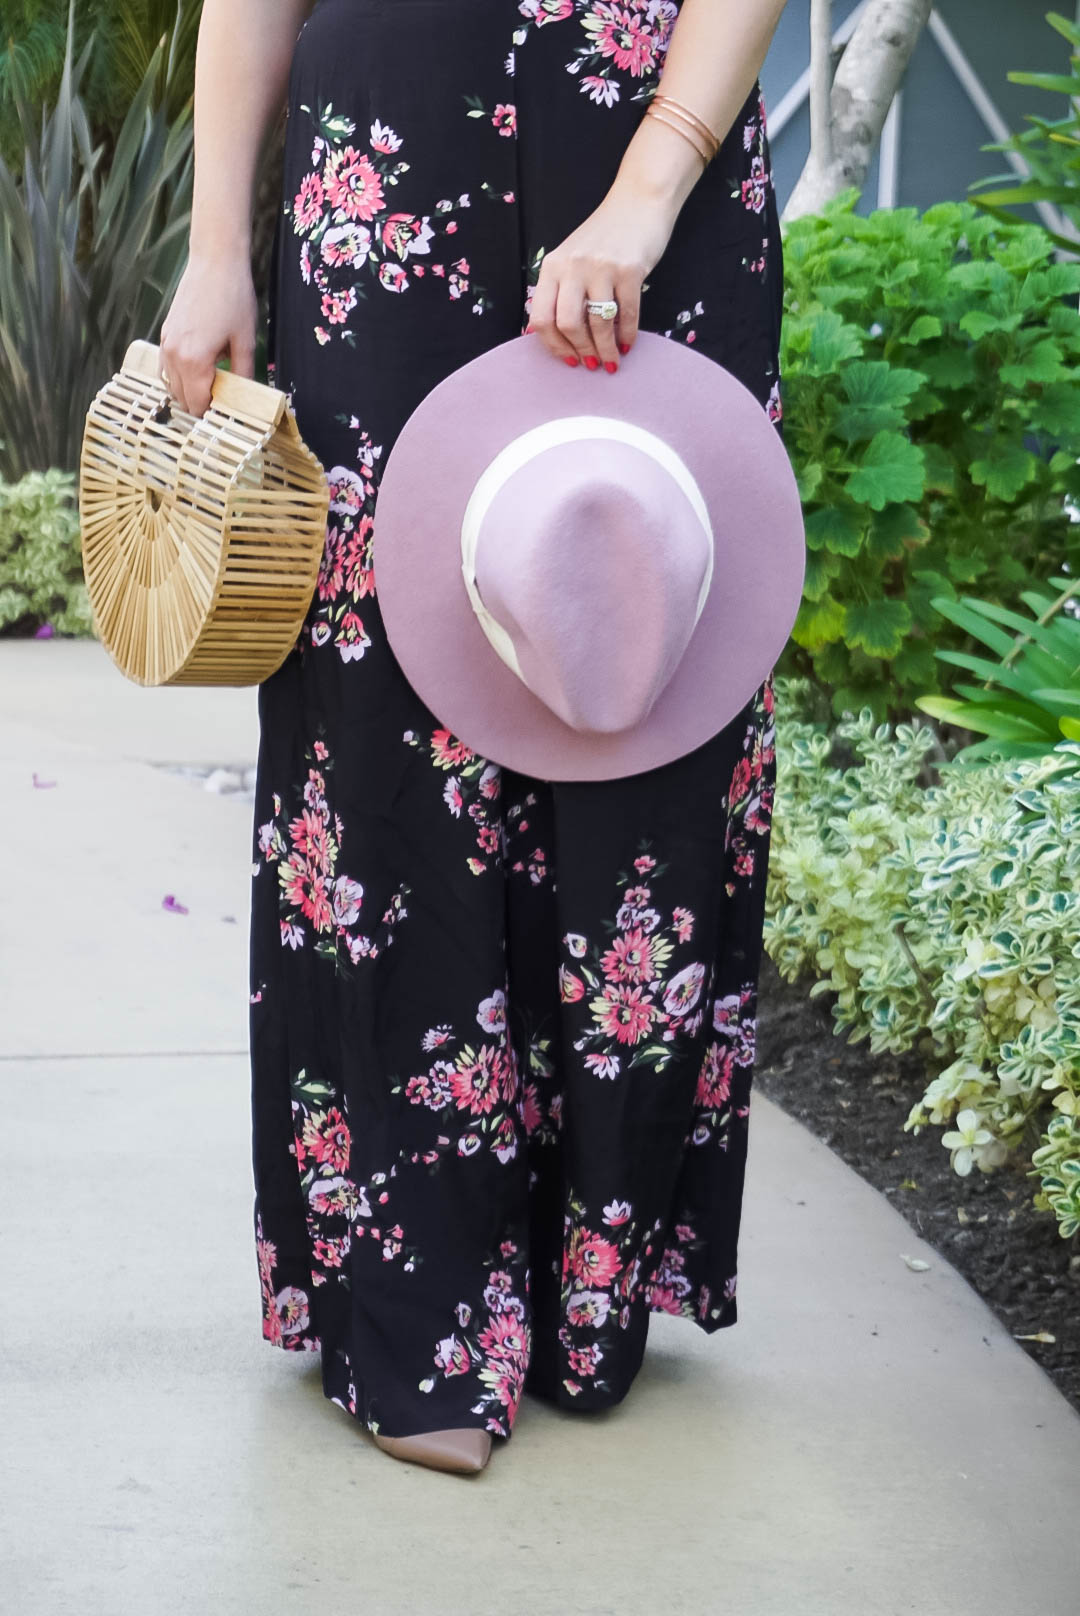 Catalina Tropical Vibes with Jill Jill Stuart, Outfit Inspiration, Jill Jill Stuart, Macy's Exclusive, Floral Pants, Mom Style, Bay Area Fashion Blogger, Have Need Want